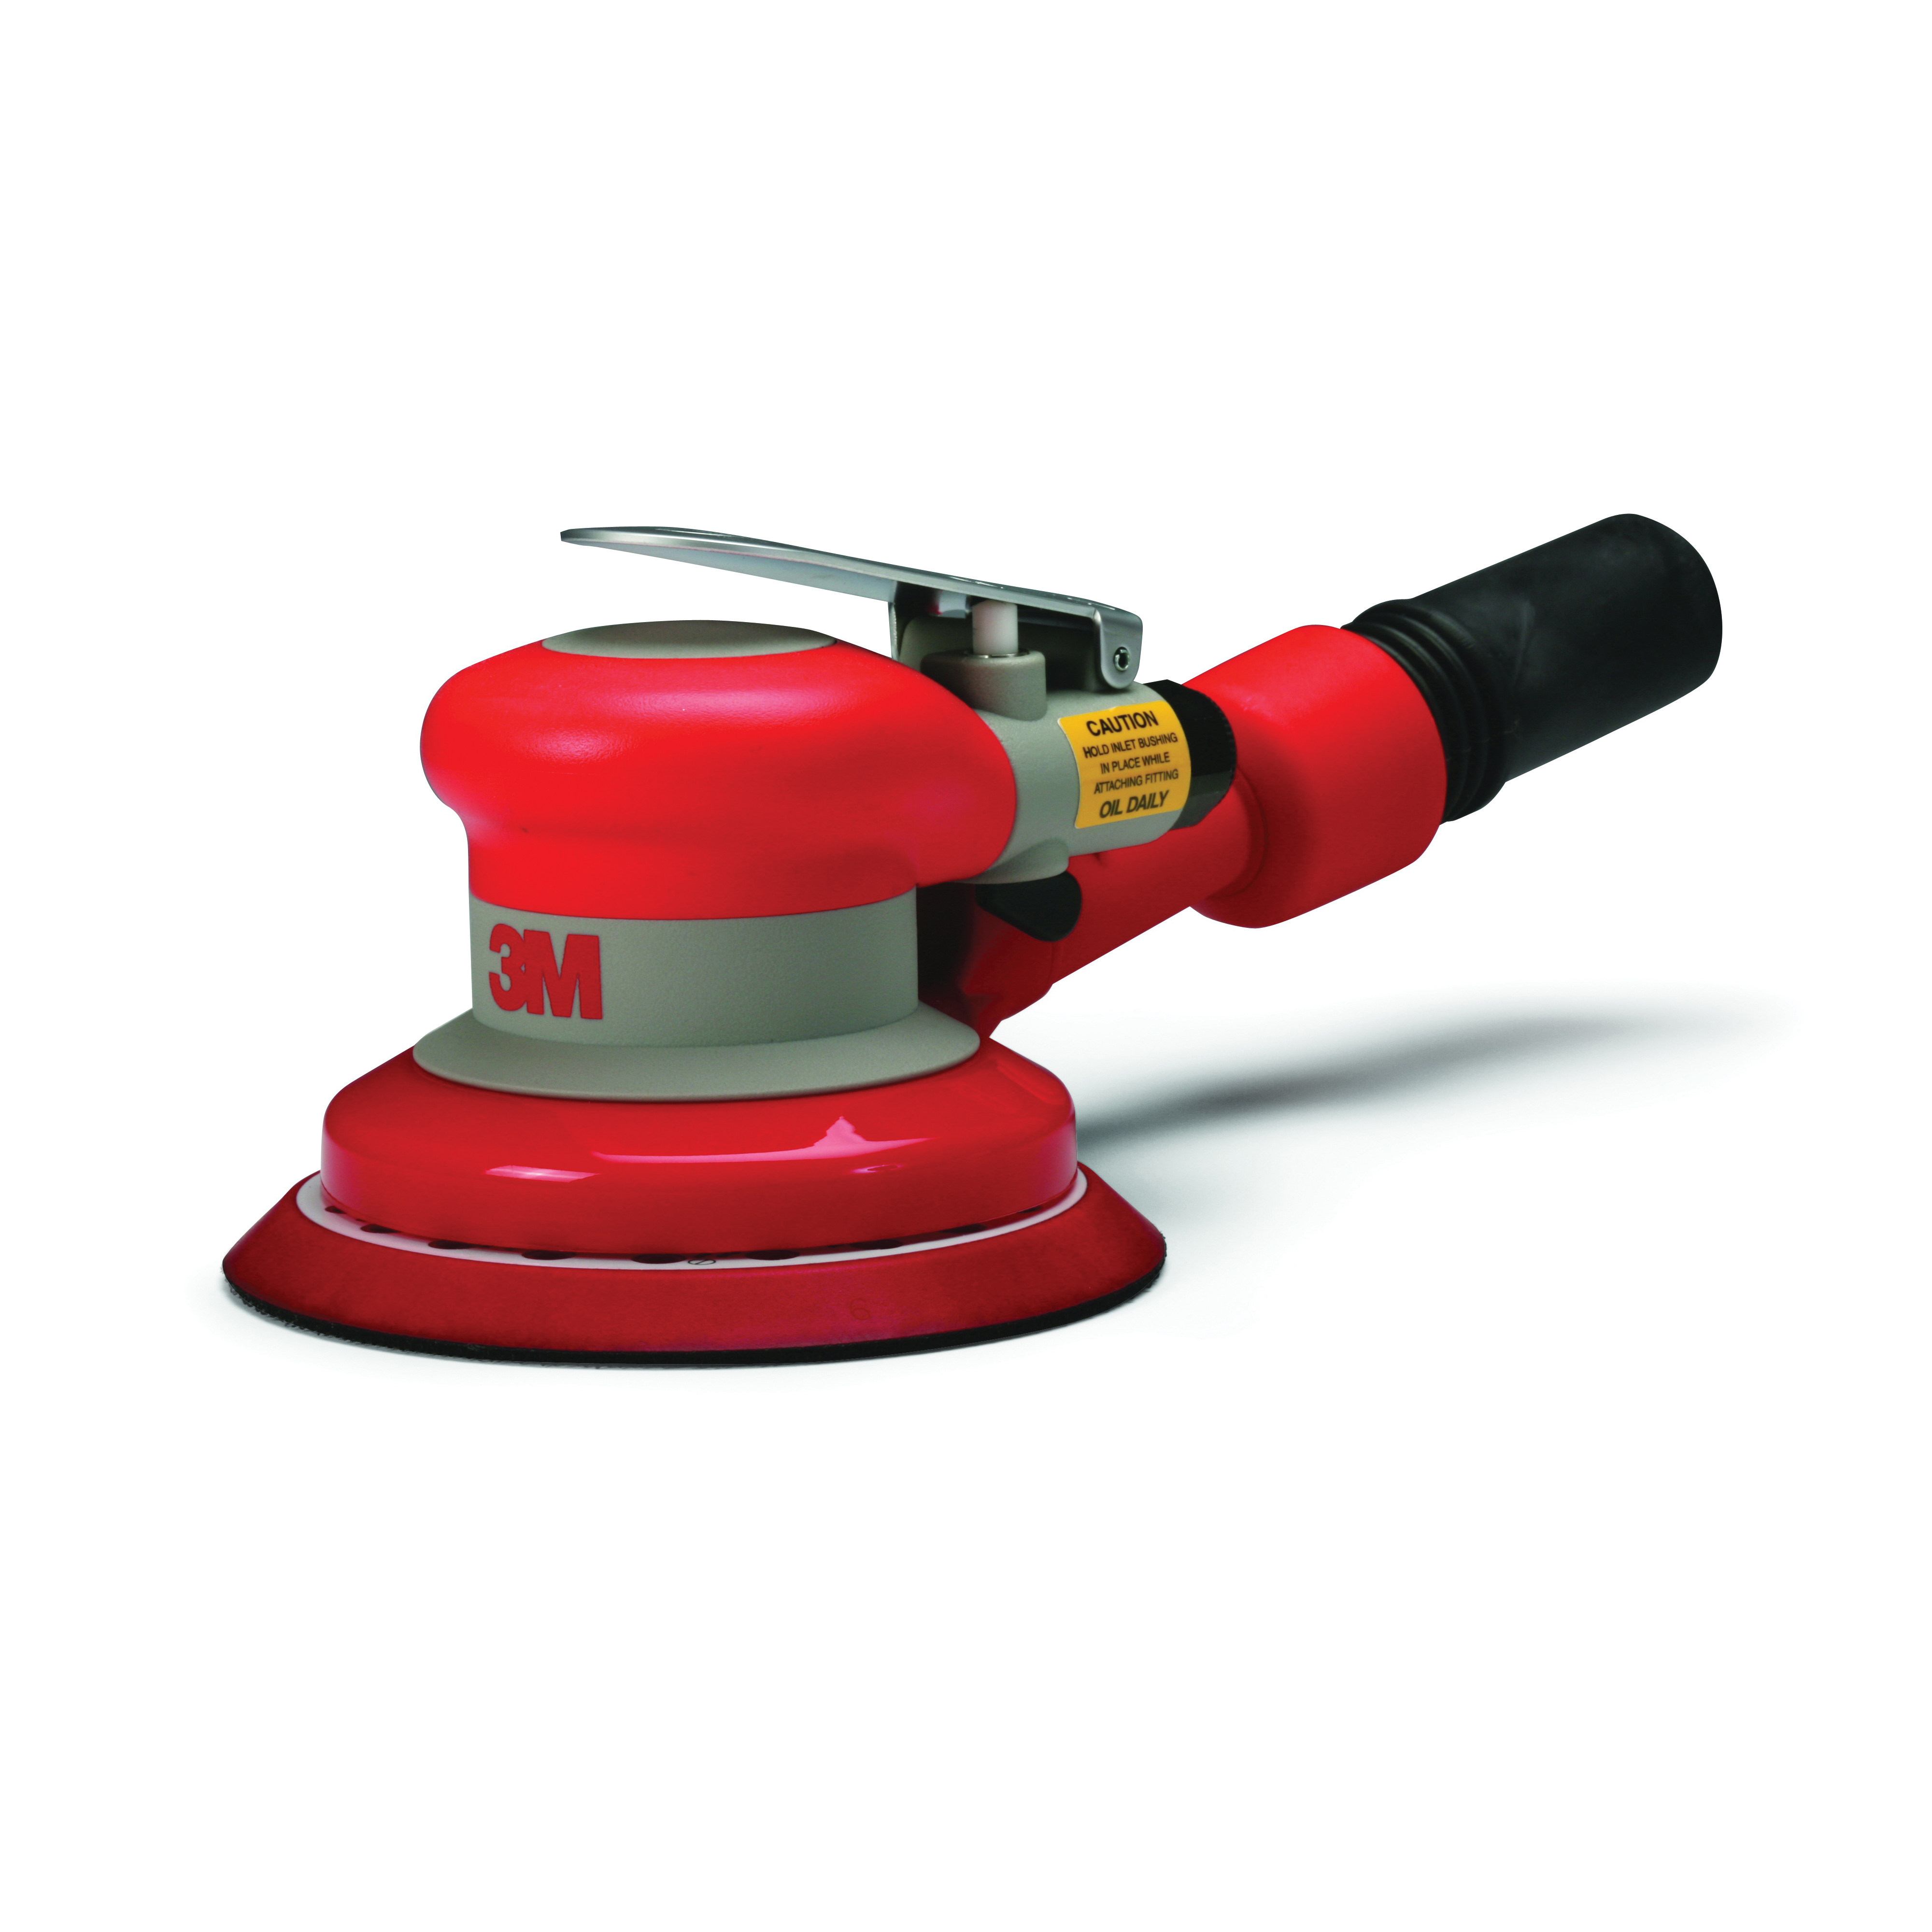 3M™ 051141-20319 Self-Generated Vacuum Pneumatic Random Orbital Sander, 5 in Pad, 17 scfm Air Flow